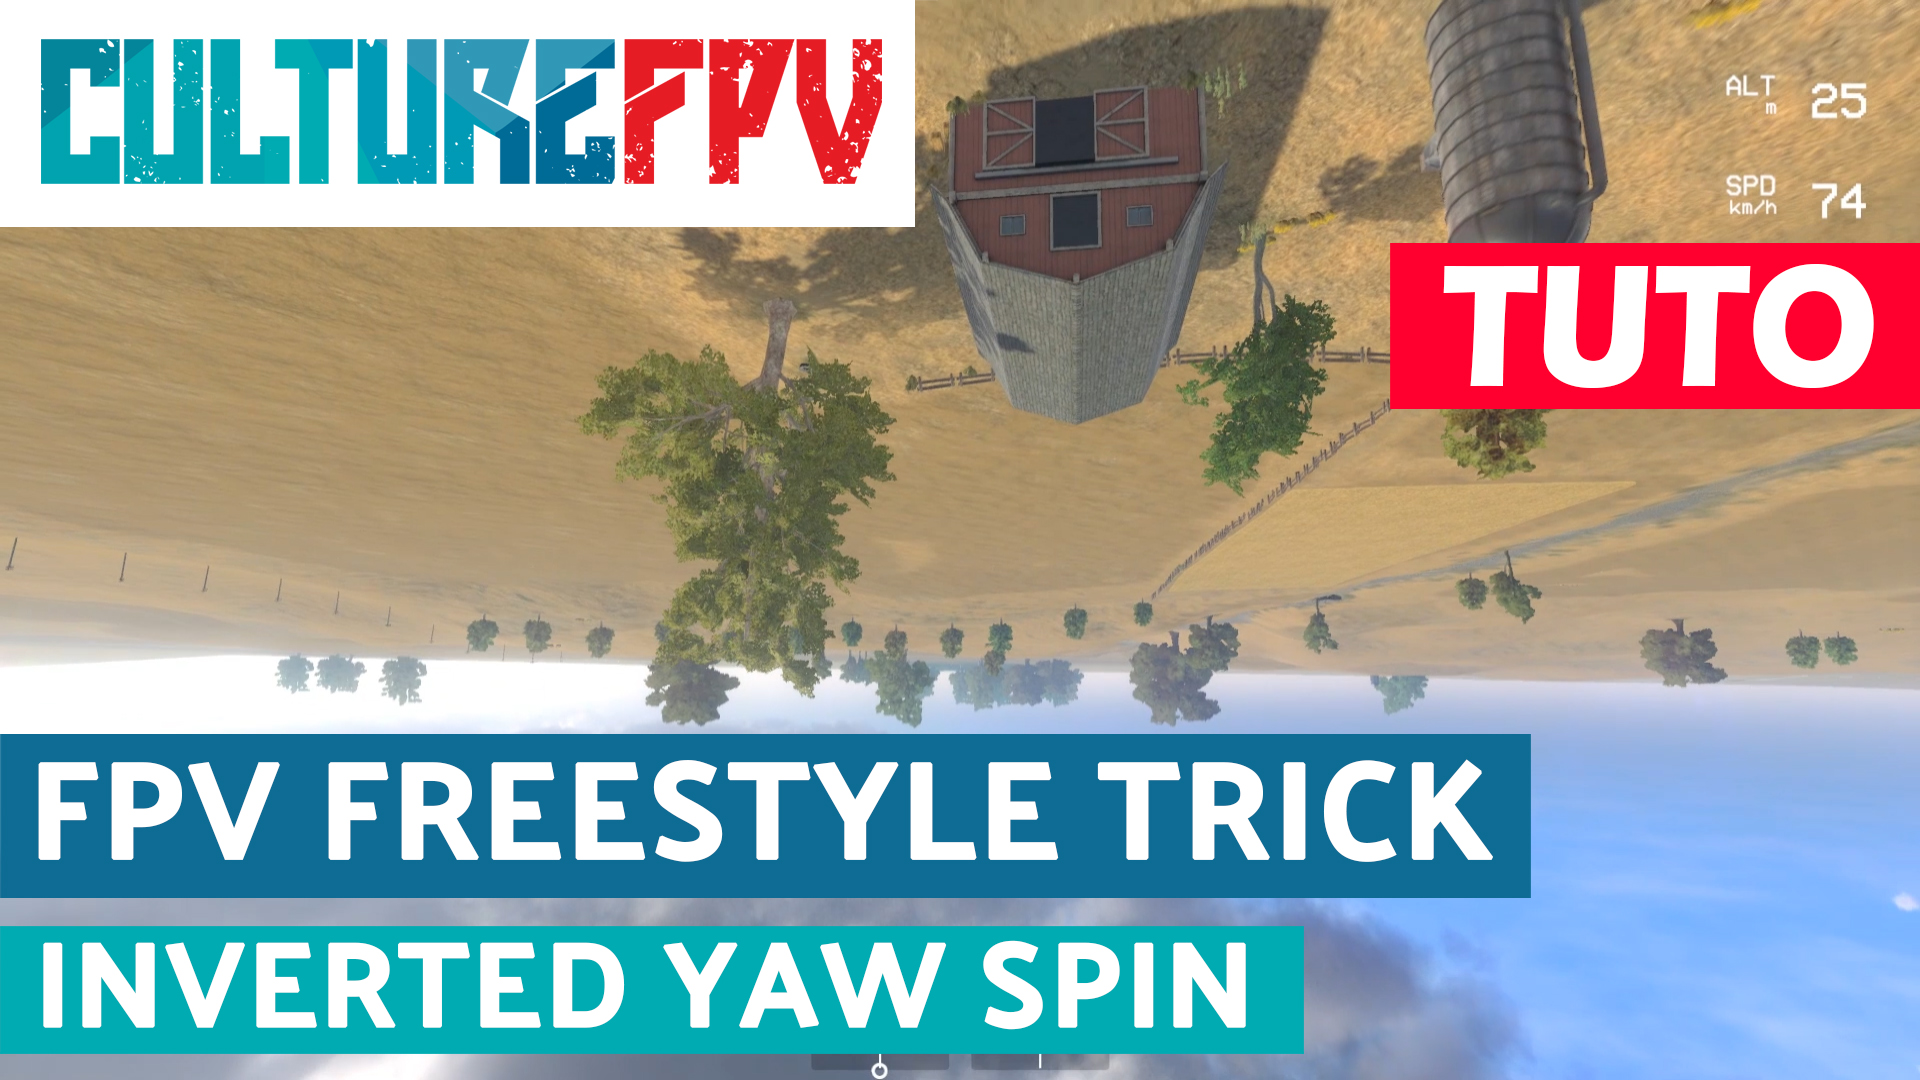 Tuto tricks inverted yaw spin